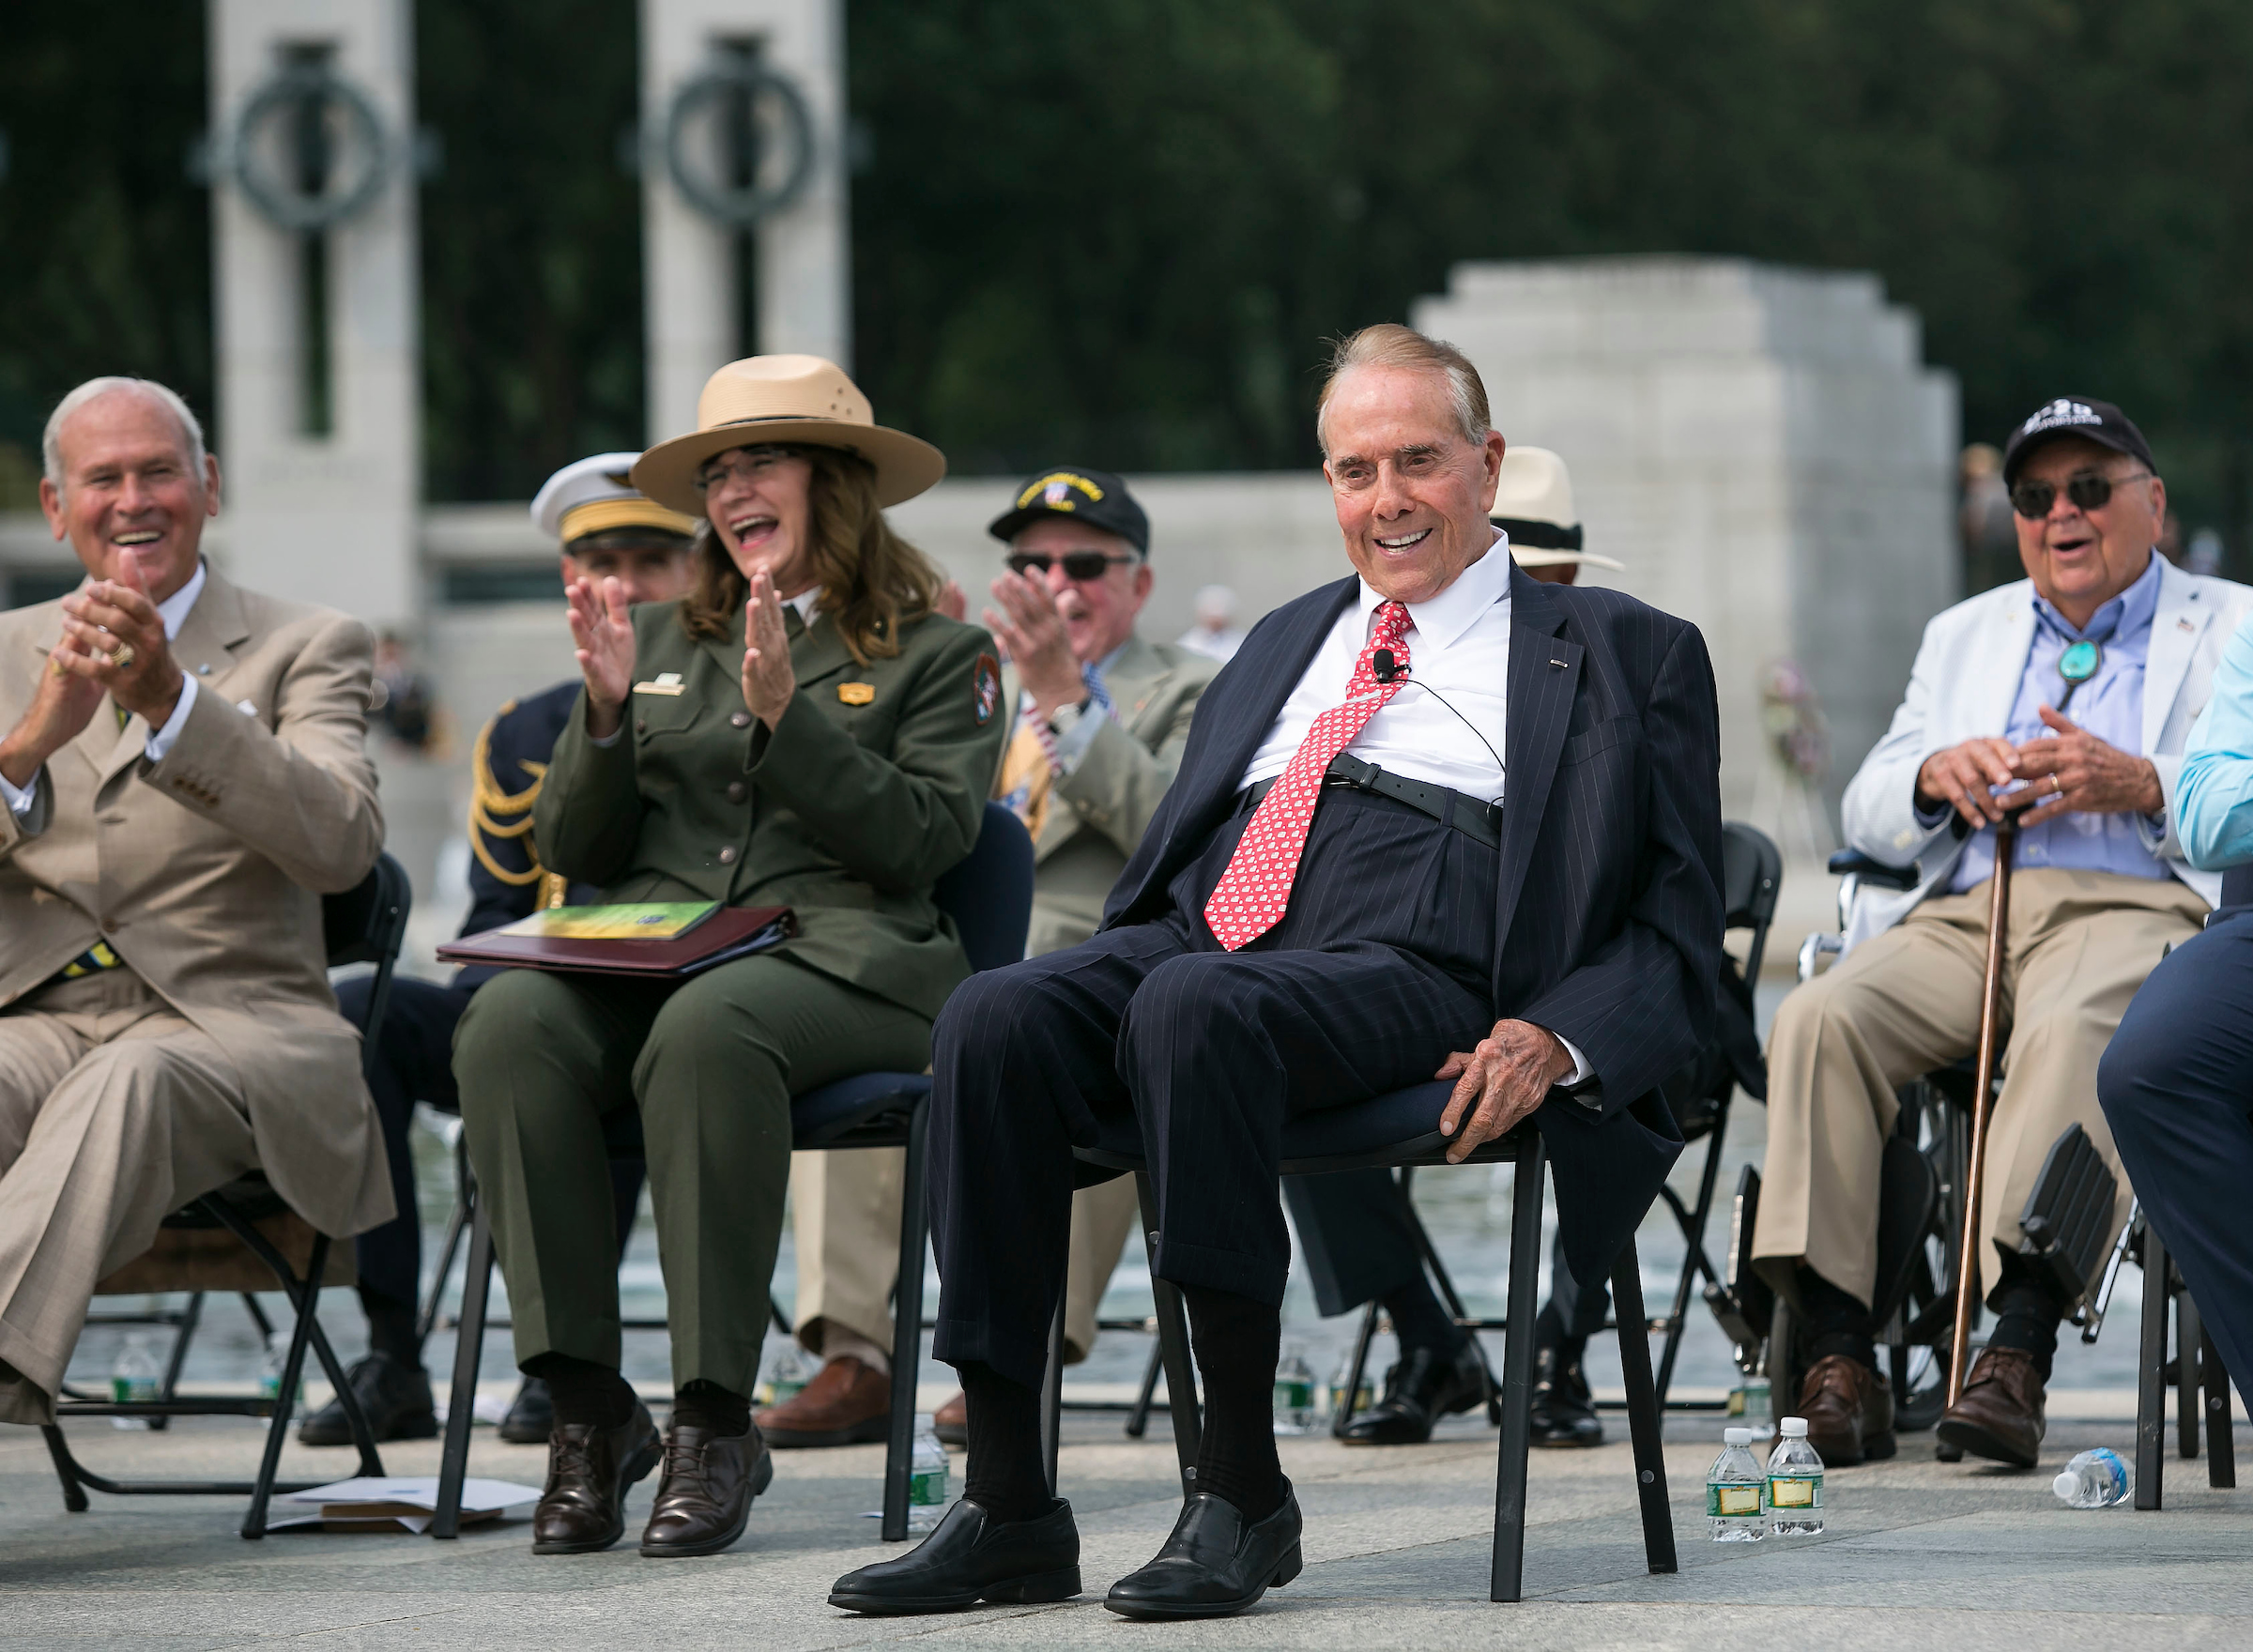 UNITED STATES - September 2: Former Sen. Bob Dole. R-Kan., jokingly announces he is also running for president, during an event to celebrate the 70th anniversary of the Allied Forces Victory in the Pacific and the end of World War II in Washington, Wednesday, September 2, 2015. Although the World War II effectively ended in August, 1945, after Japanese forces surrendered to the Allied Forces, it was on September 2, 1945, that a formal surrender ceremony in Tokyo Bay occurred aboard the USS Missouri, that officially ended the war. Then President Harry Truman declared September 2 to be V-J Day, or Victory over Japan Day. (Photo By Al Drago/CQ Roll Call)